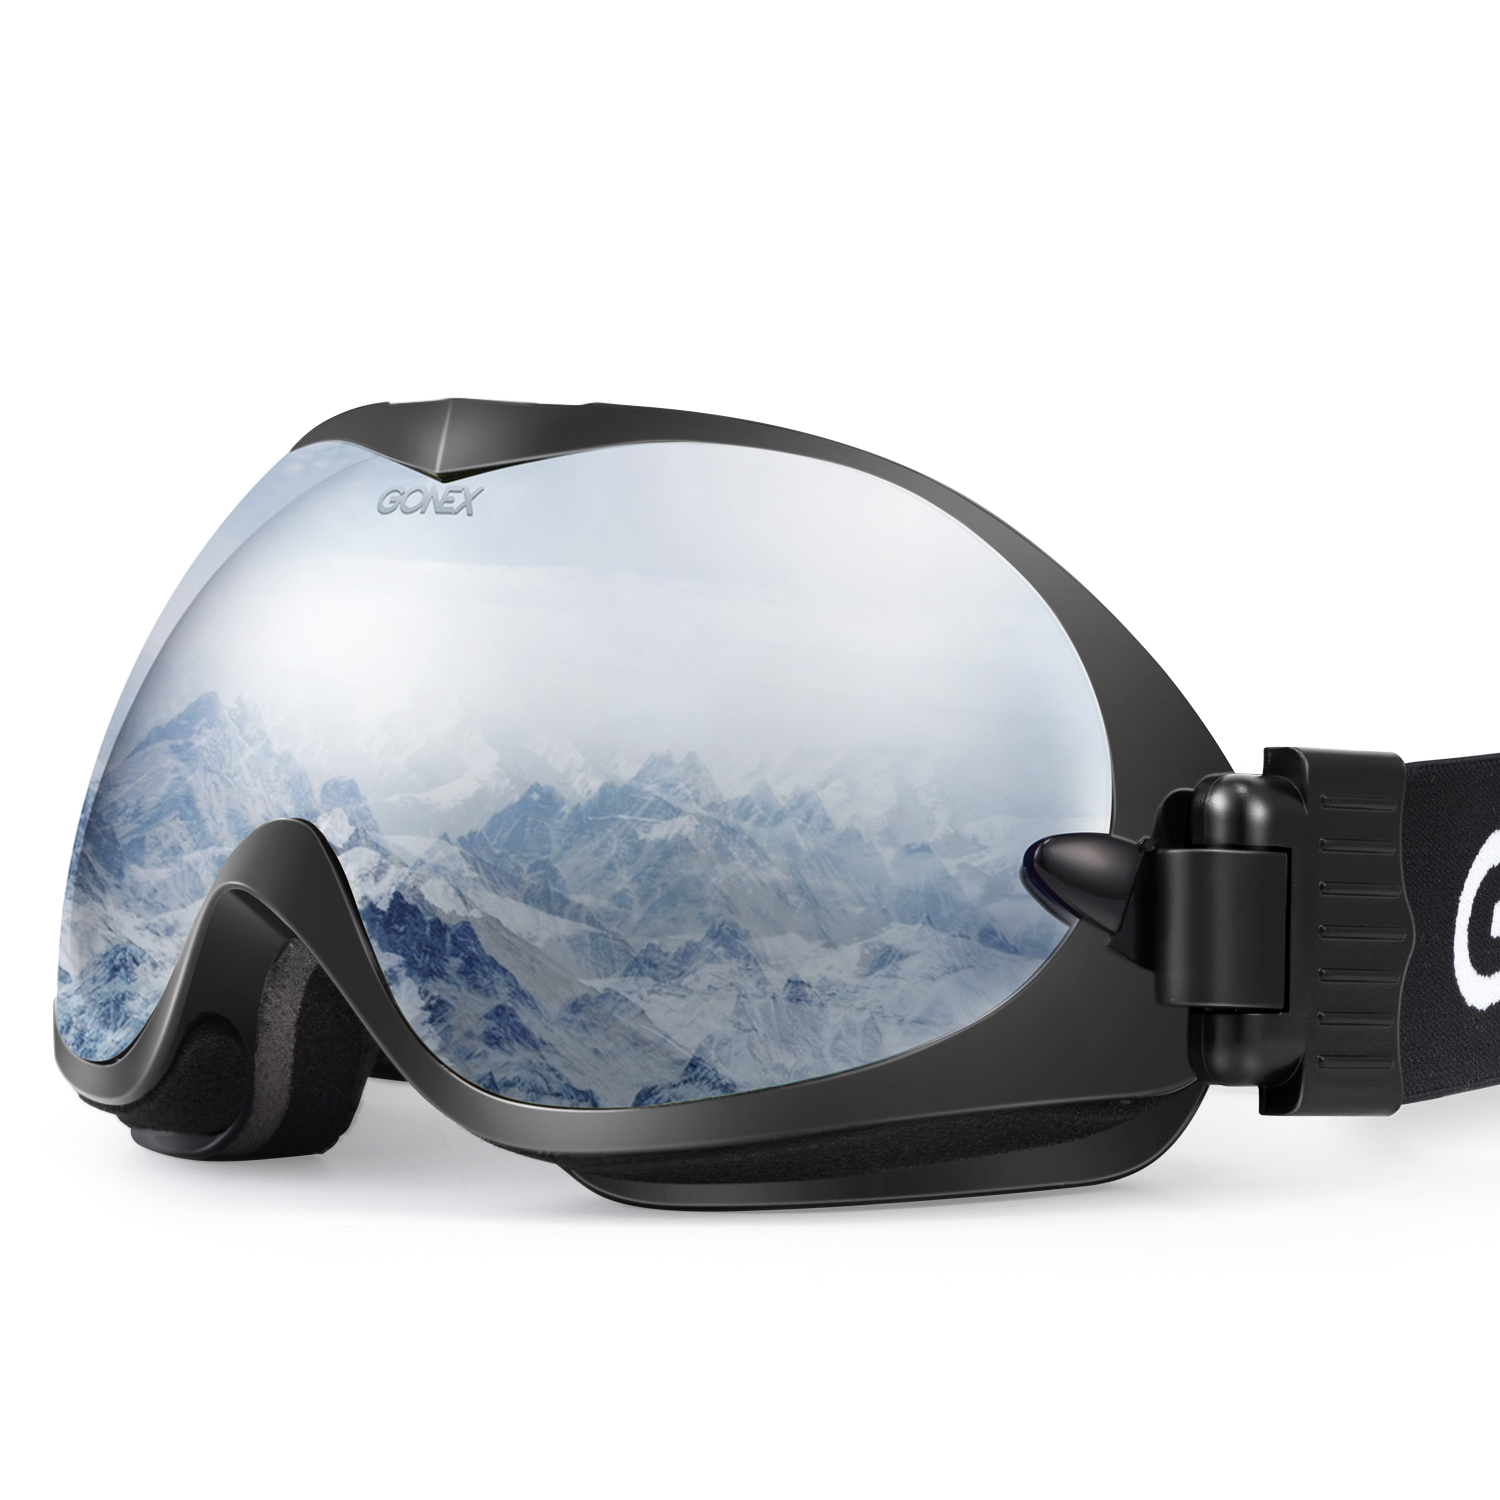 Gonex Professional Ski Goggles OTG Anti-fog Windproof Snow Snowboard Double Lens Winter Sports Goggle Case EVA Box by Gonex